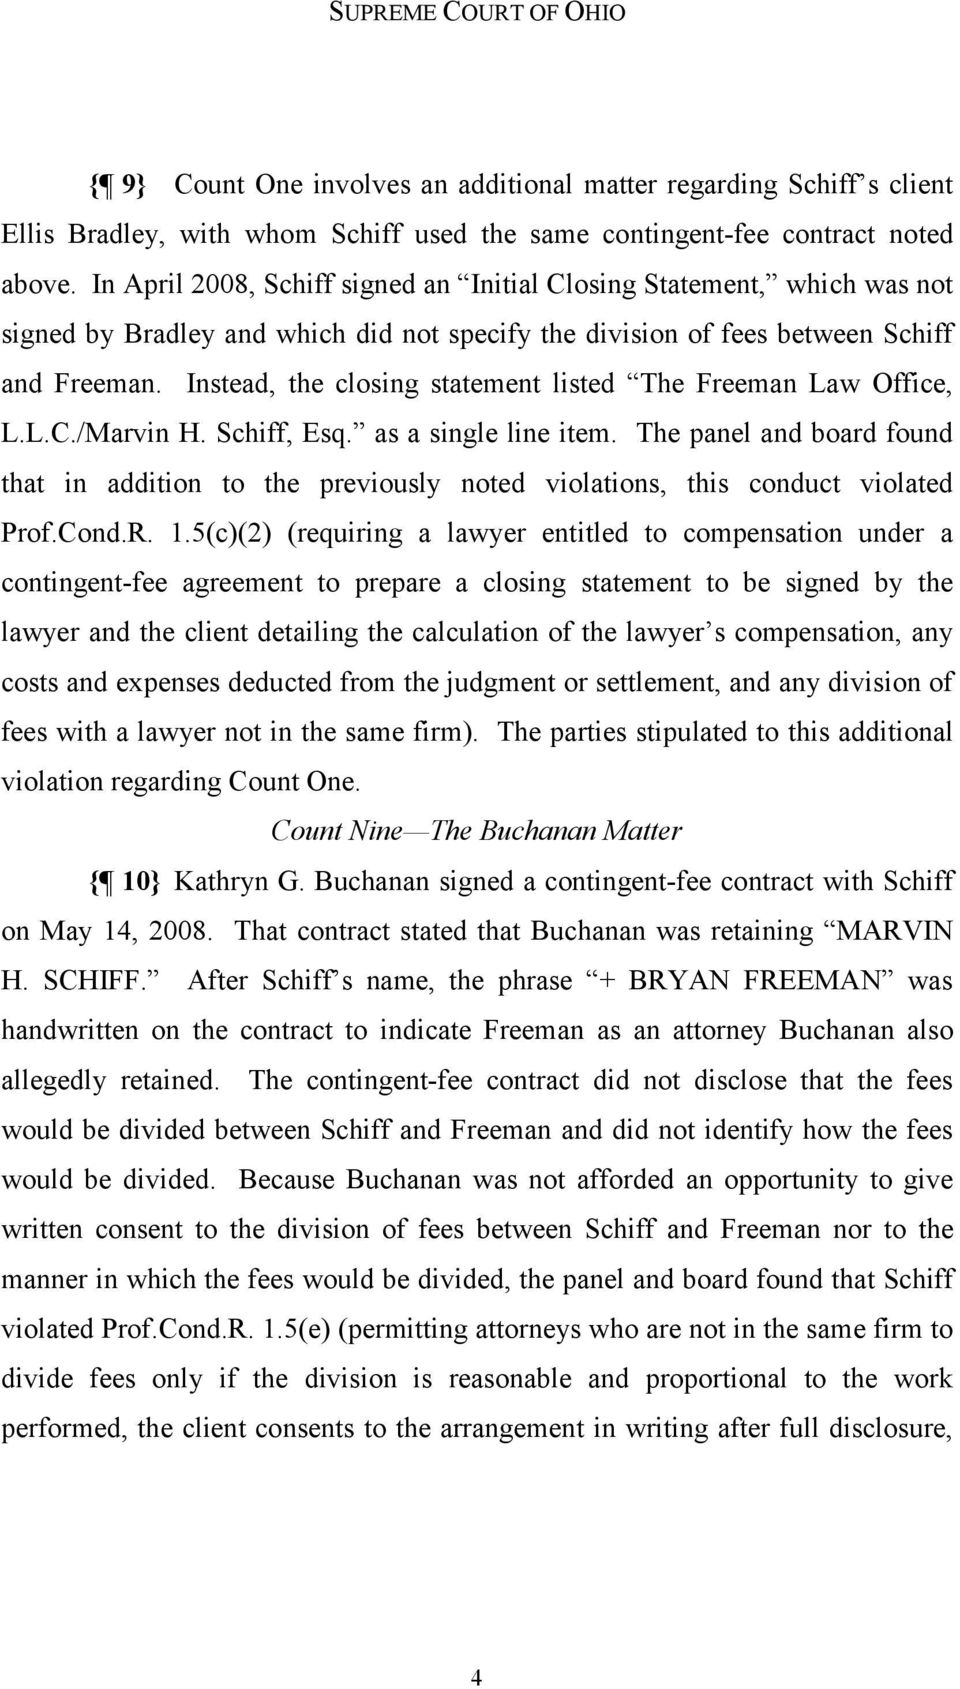 Instead, the closing statement listed The Freeman Law Office, L.L.C./Marvin H. Schiff, Esq. as a single line item.